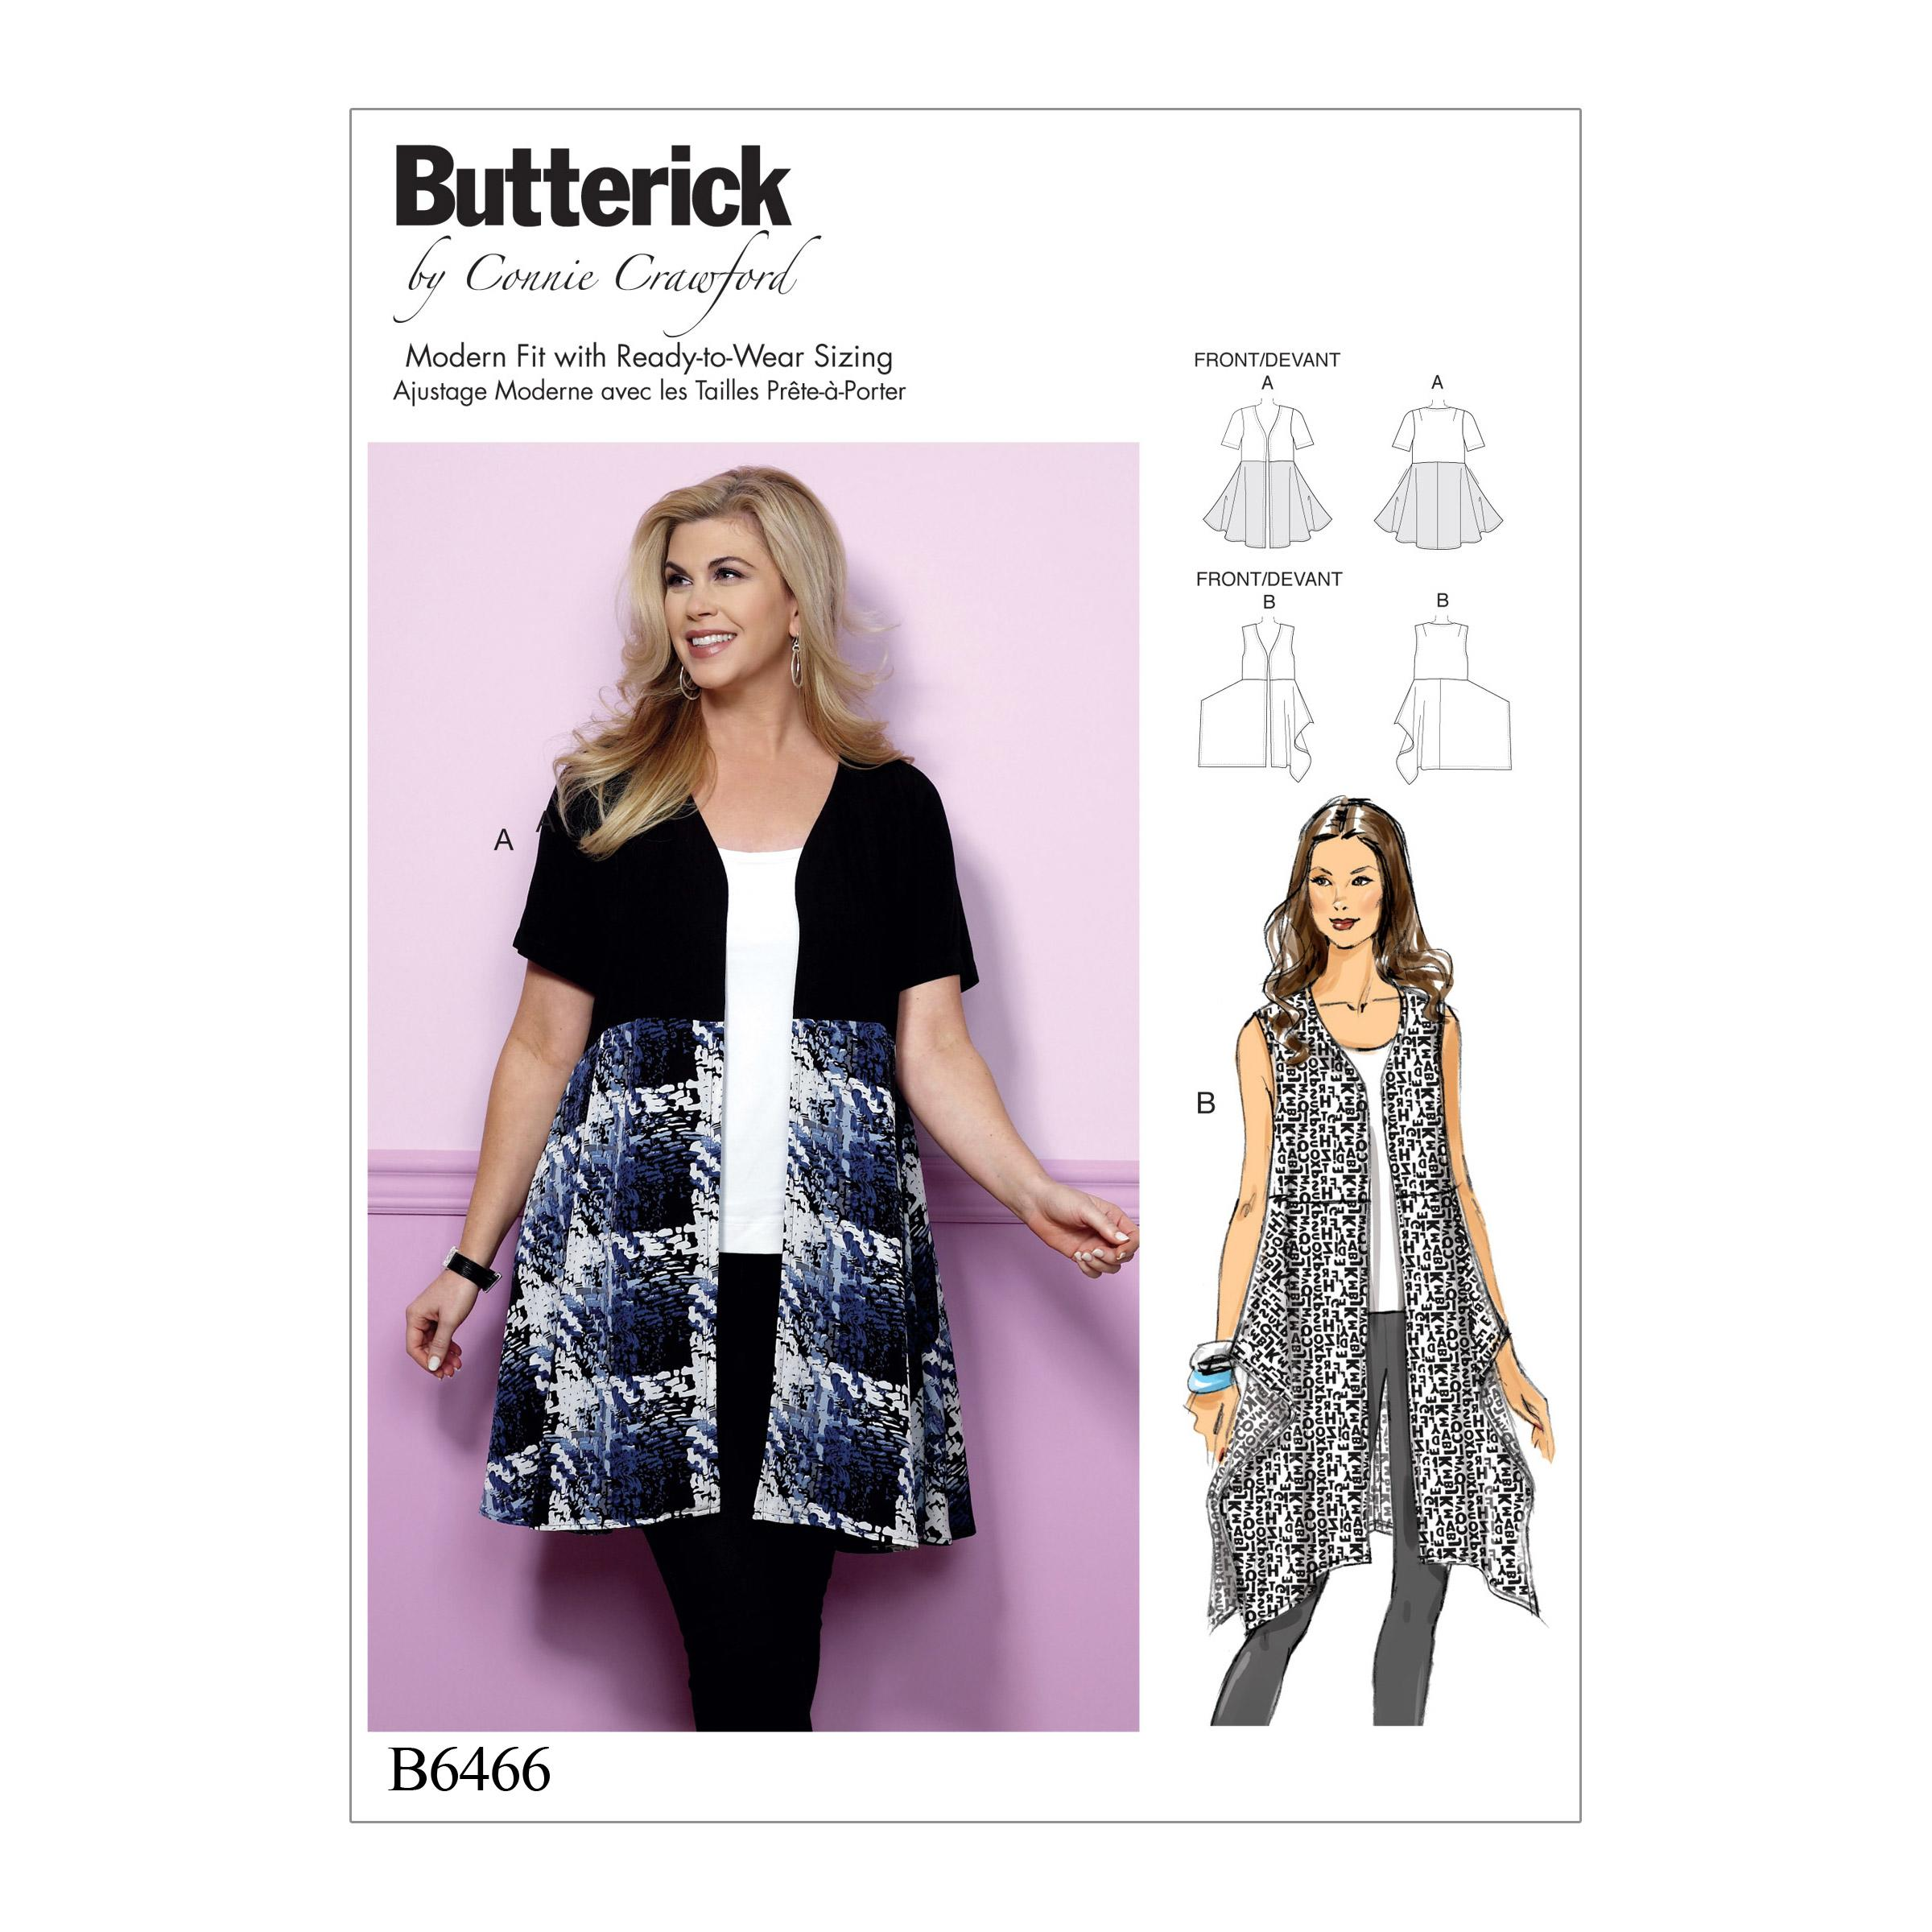 Butterick B6466 Misses'/Women's Open-Front, Flared Tunics